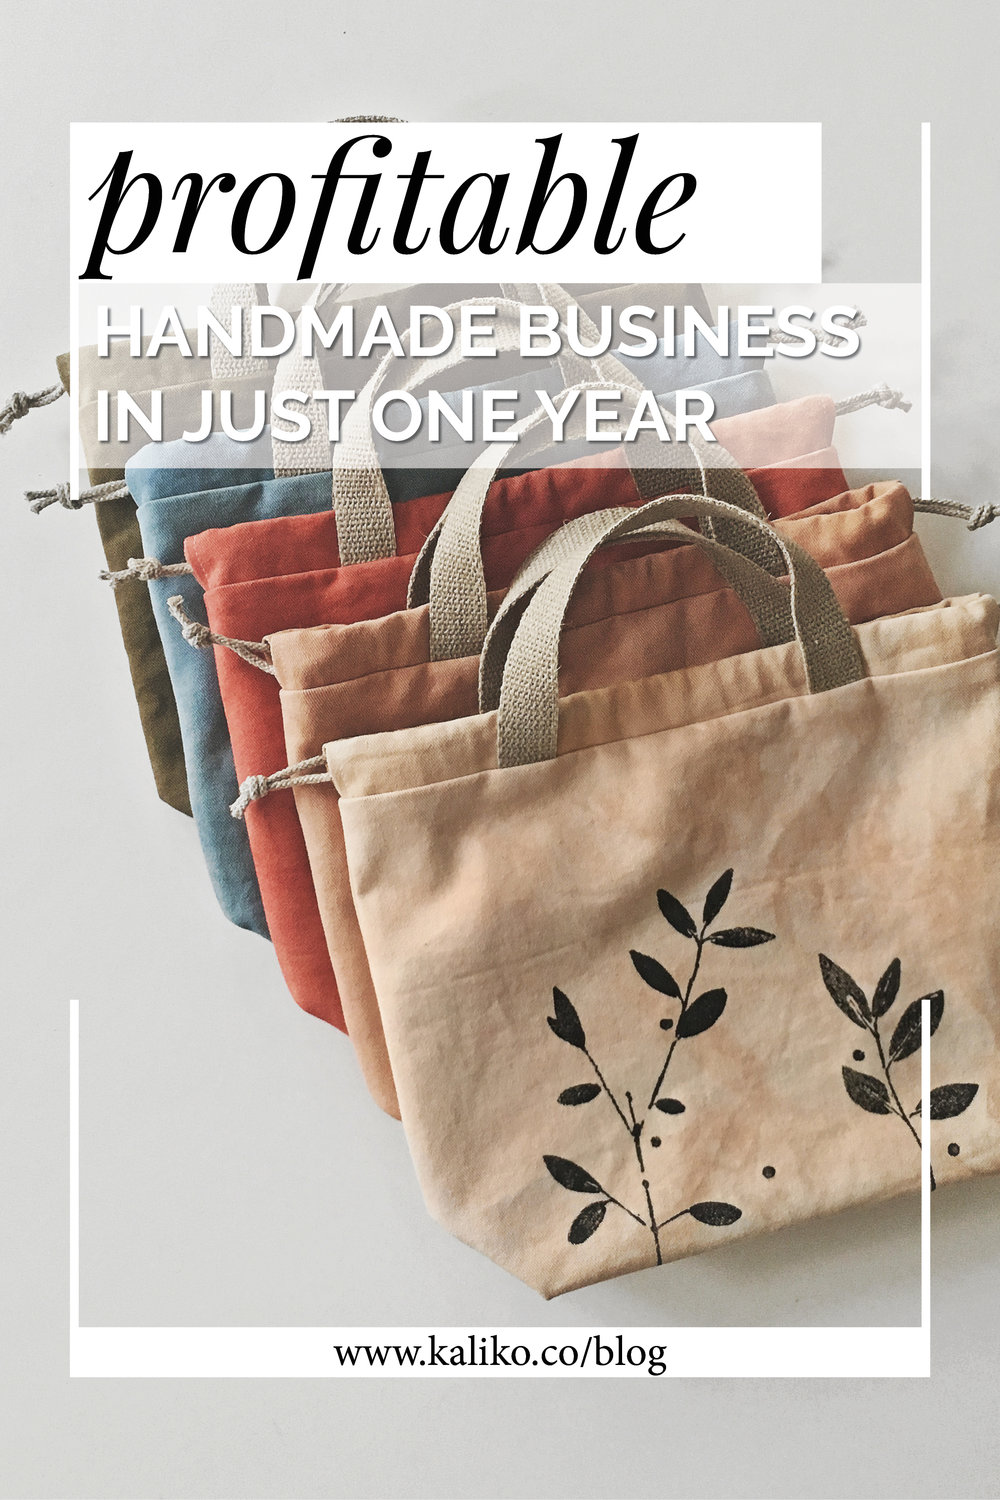 Profitable handmade business in just one year